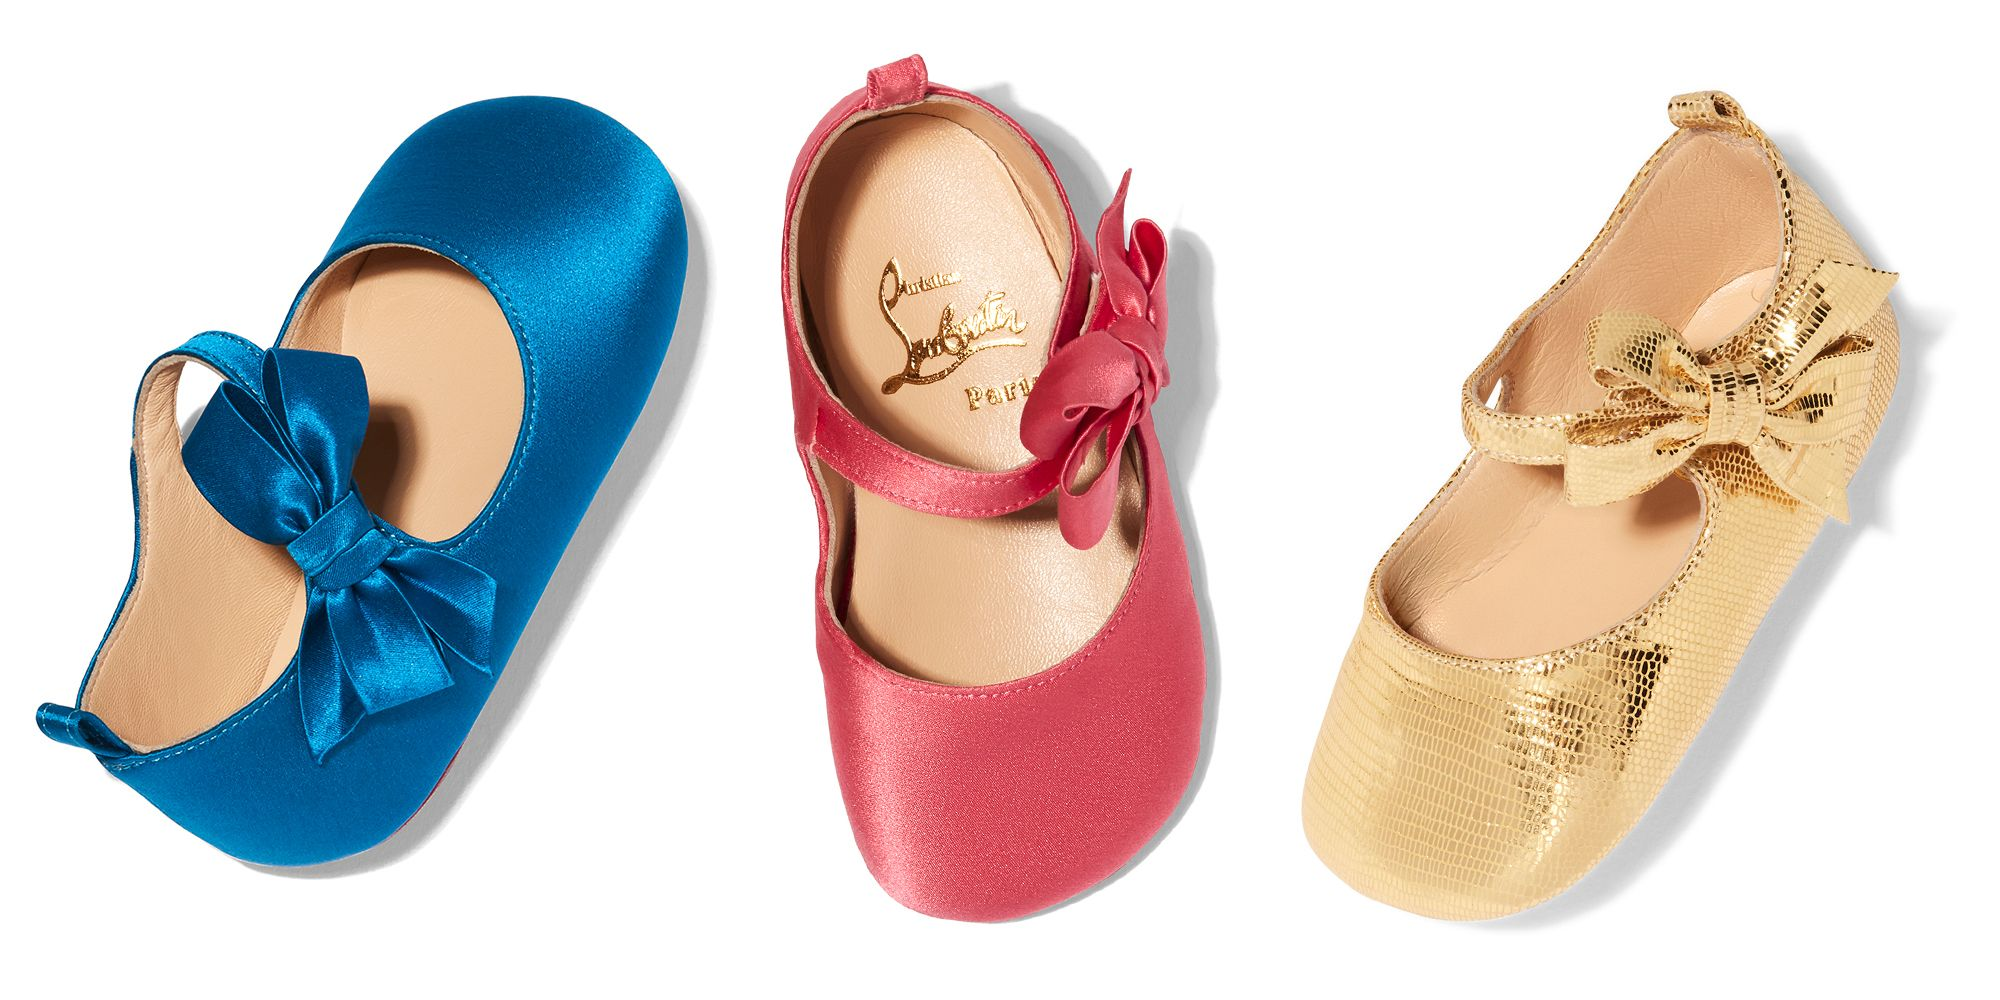 christian louboutin for babies